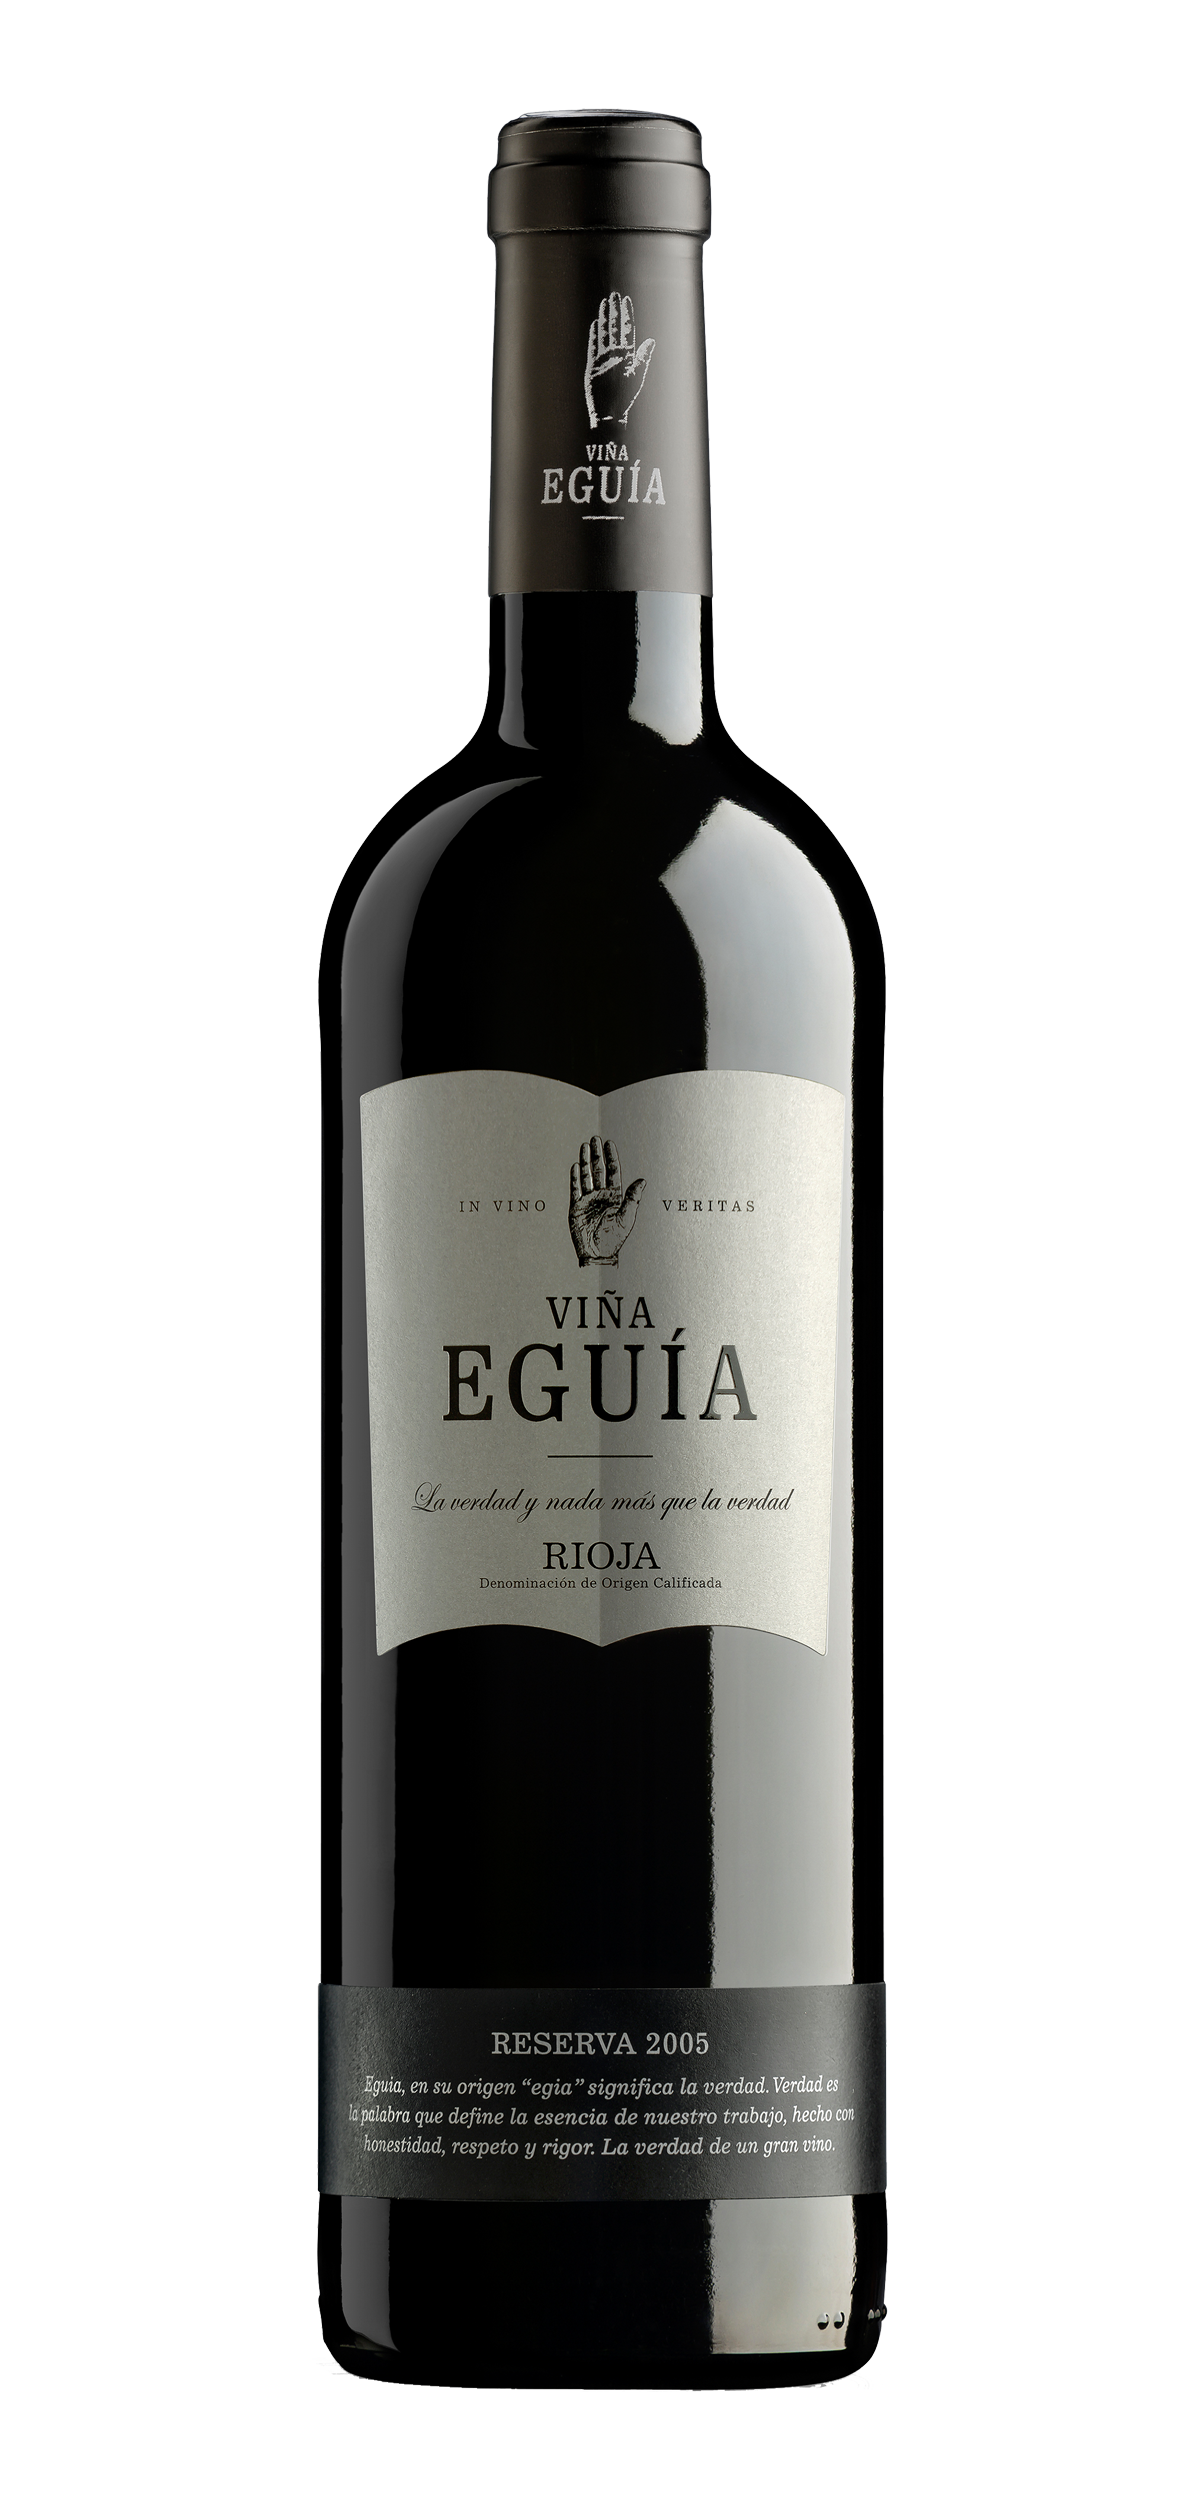 Viña Eguia Reserva wine bottle design